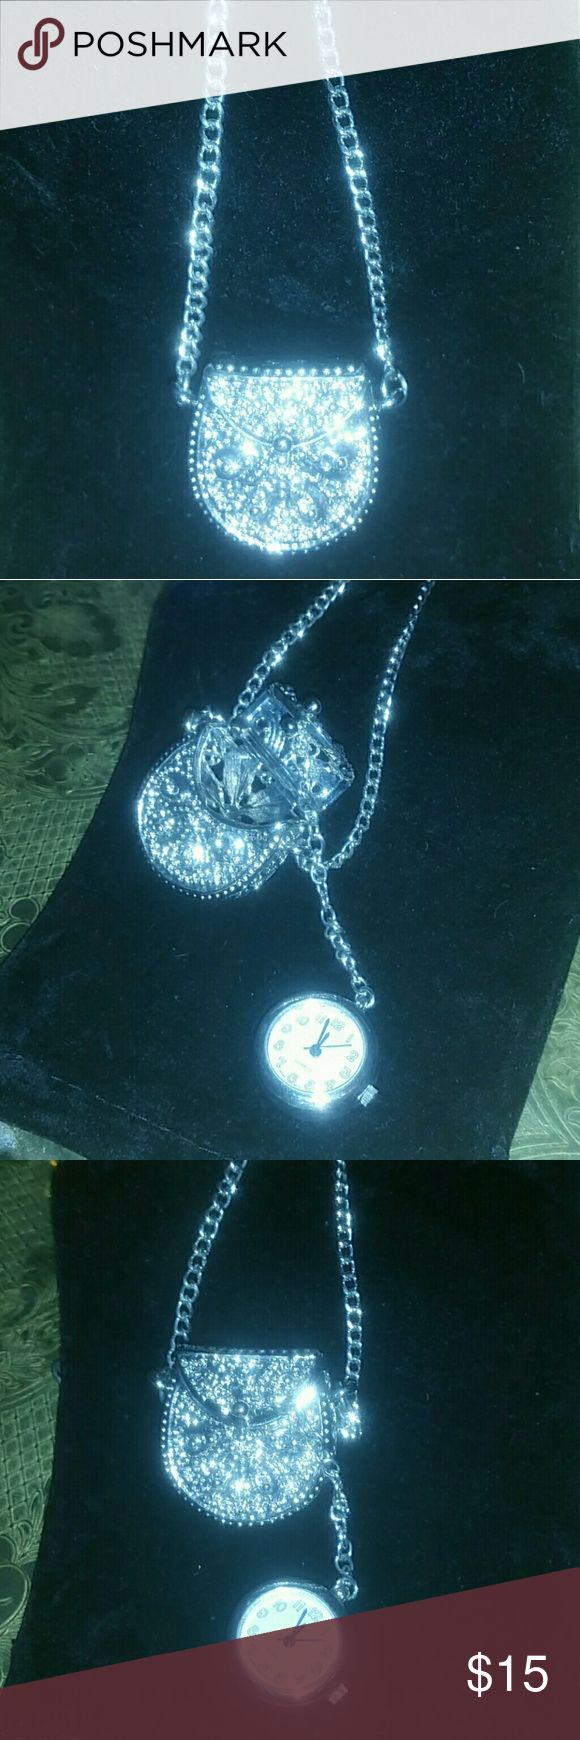 Unique vintage pocket watch pendant necklace Beautiful vintage quartz pocket watch pendant necklace. Working watch, needs new battery. Definitely a conversation piece. Beautifully detailed all the way around. Vintage Jewelry